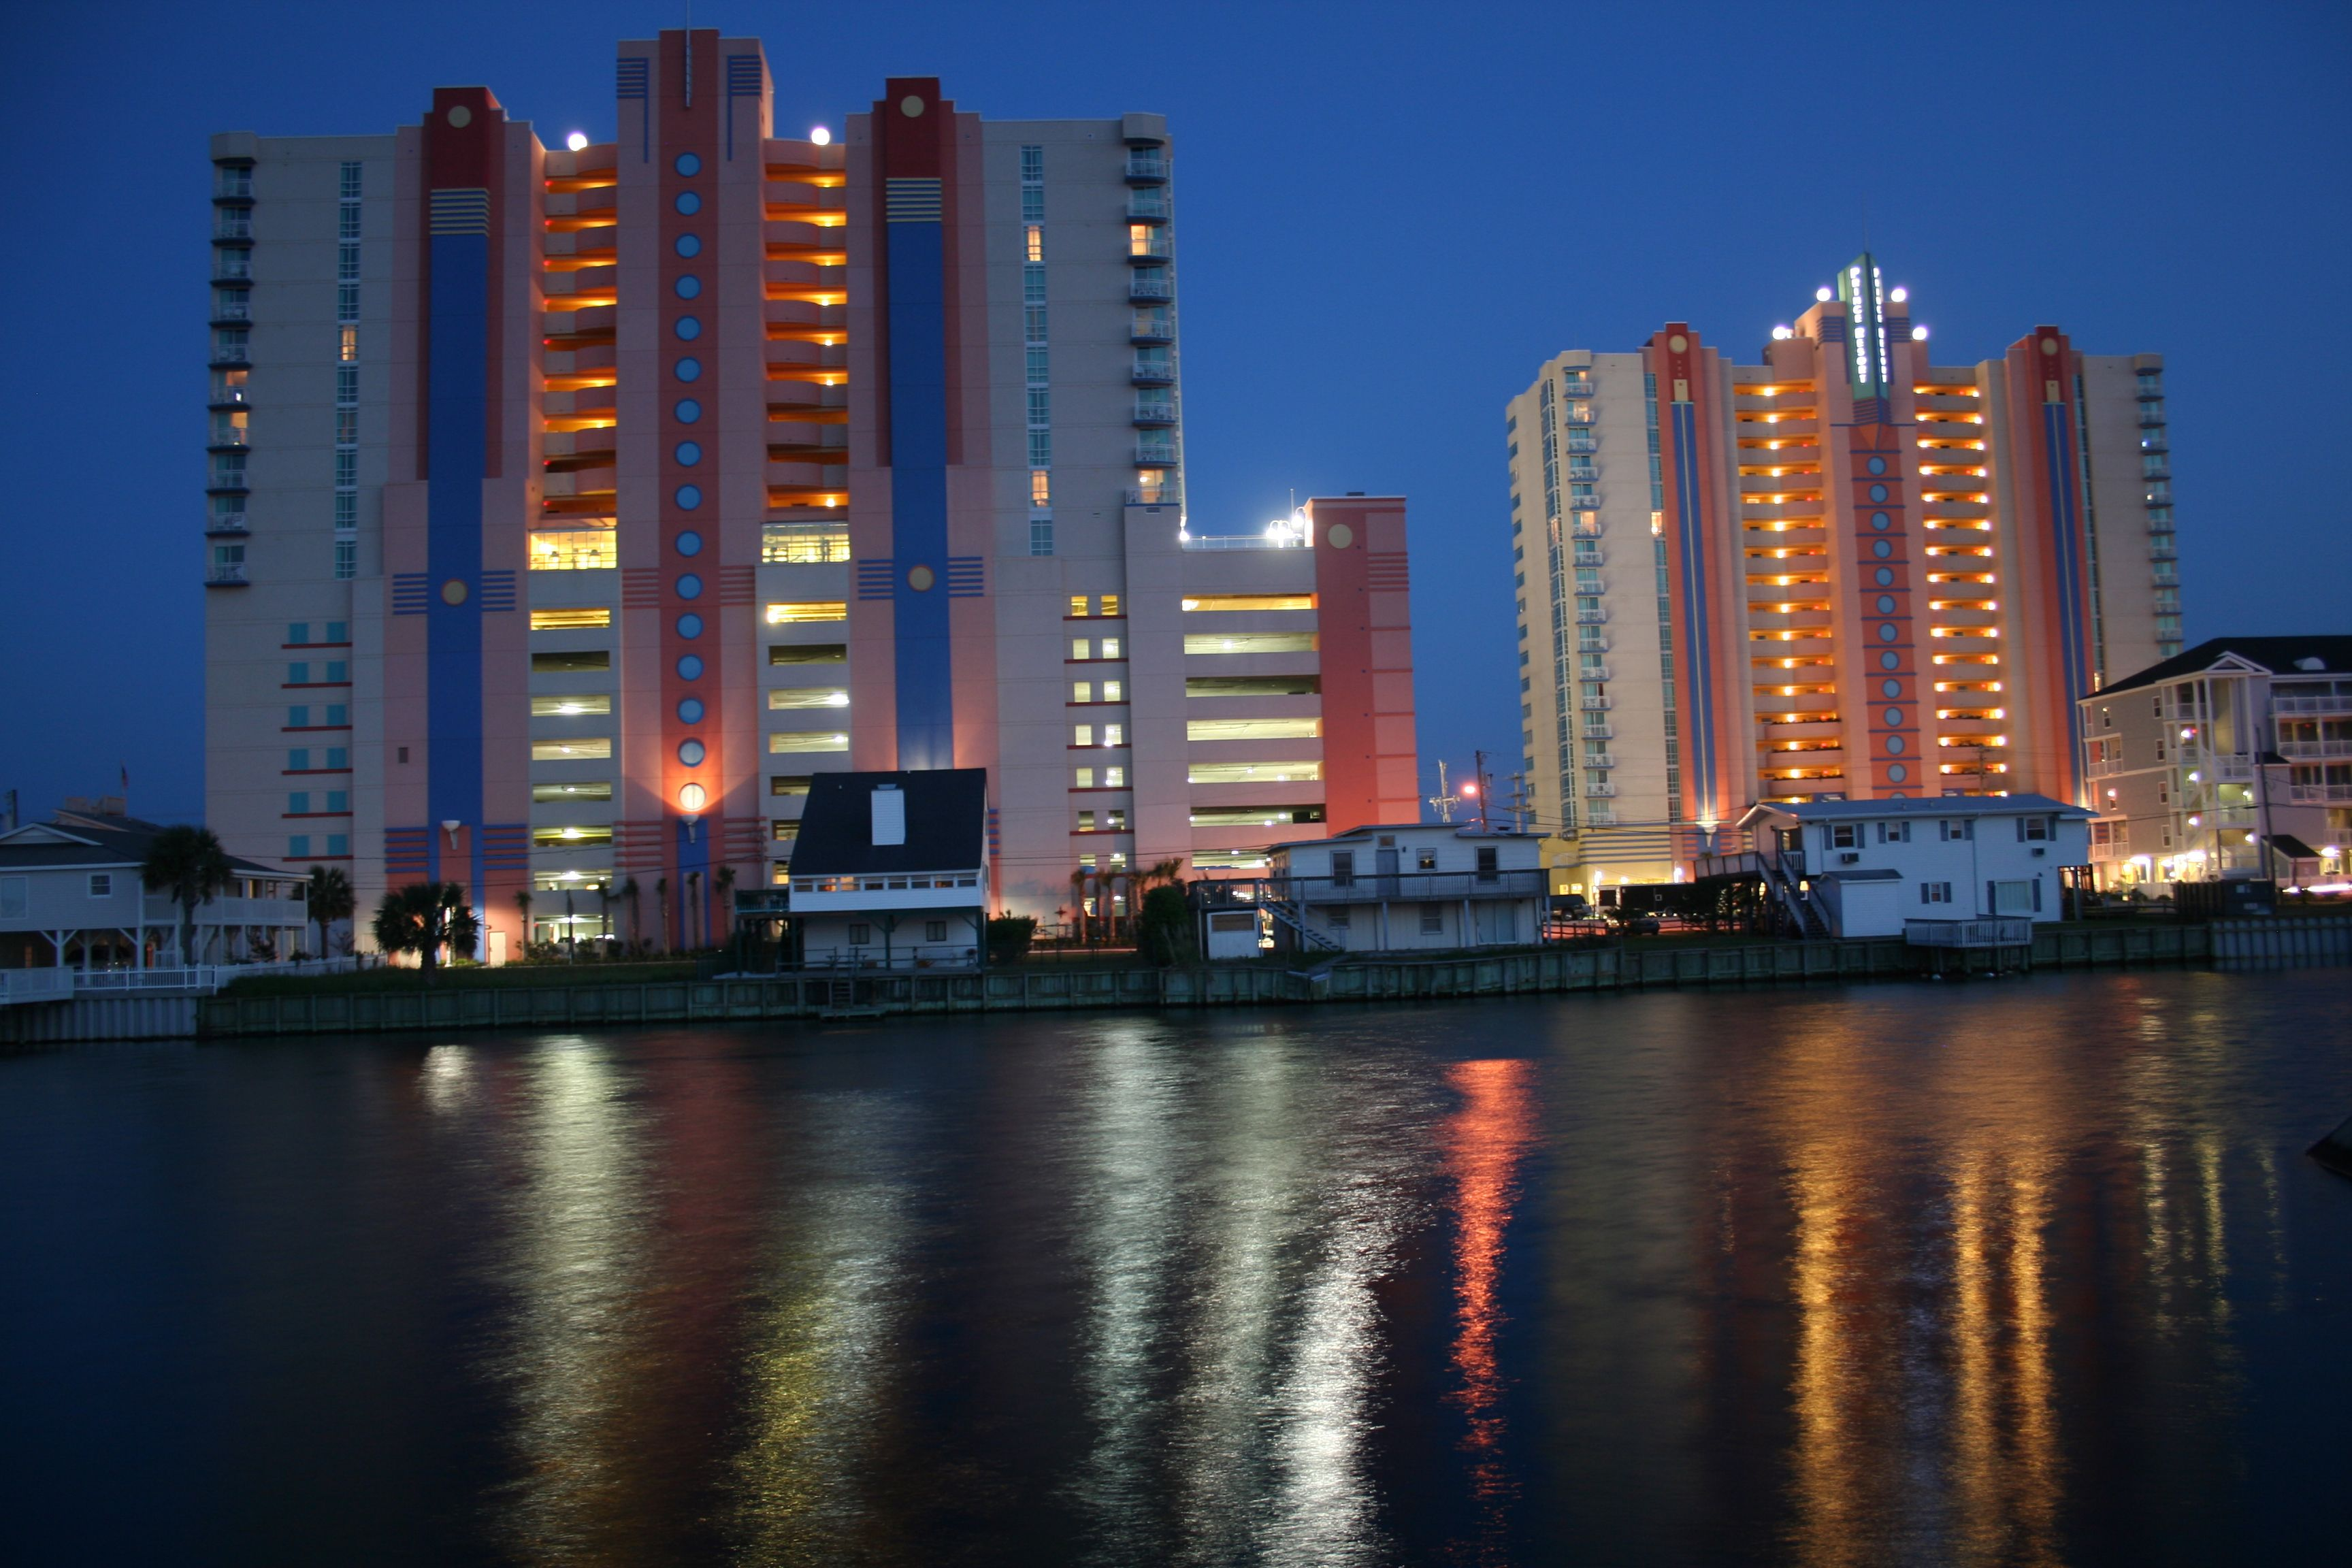 A Nighttime View Of The Prince Resort At Cherry Grove Pier In North Myrtle Beach South Carolina